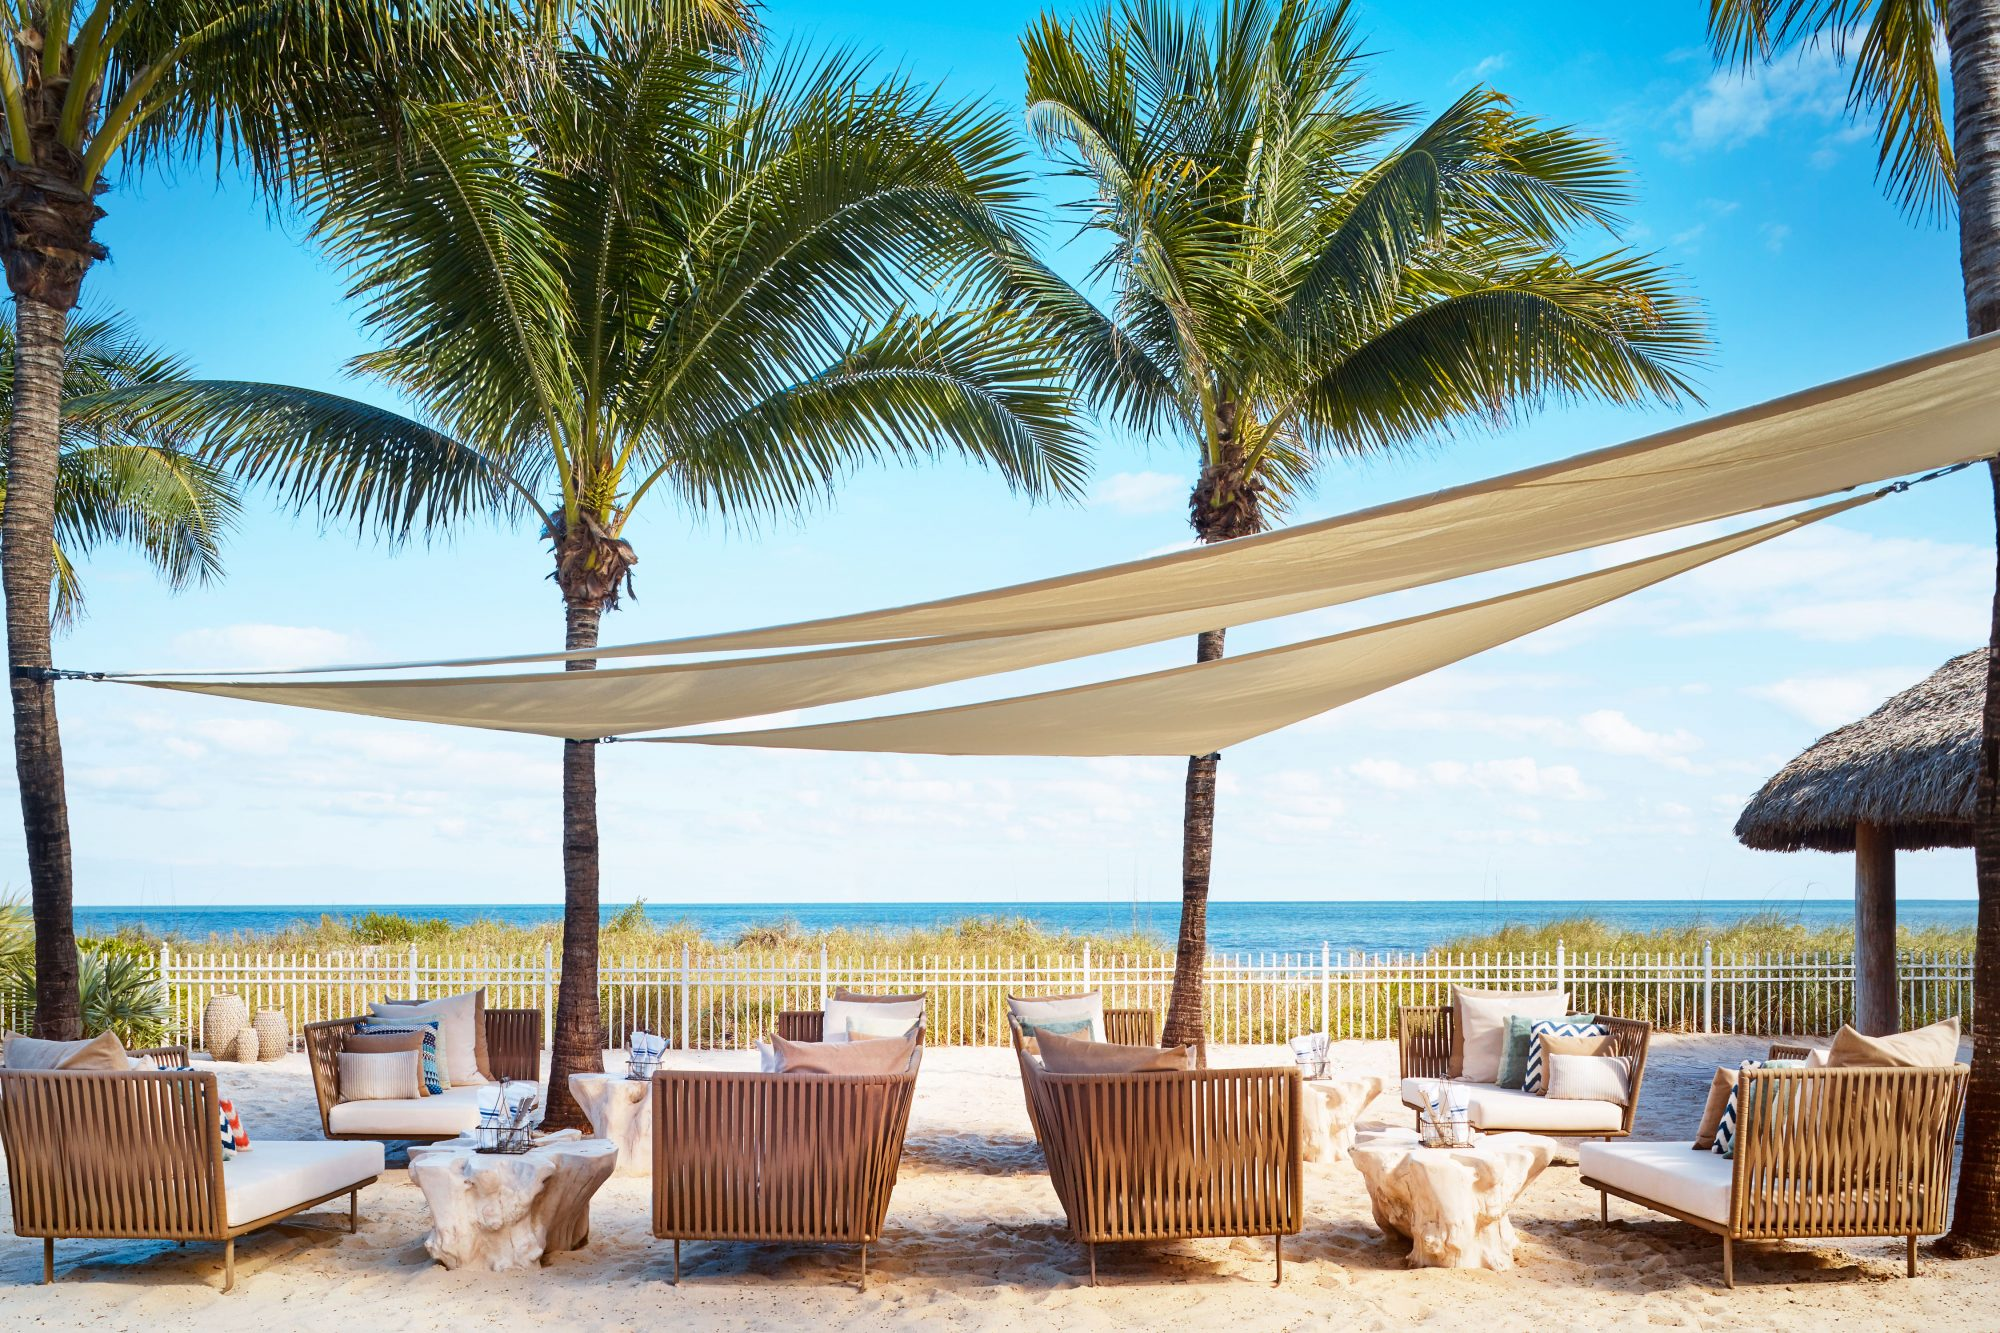 The Best All-Inclusive Beach Resorts in Florida